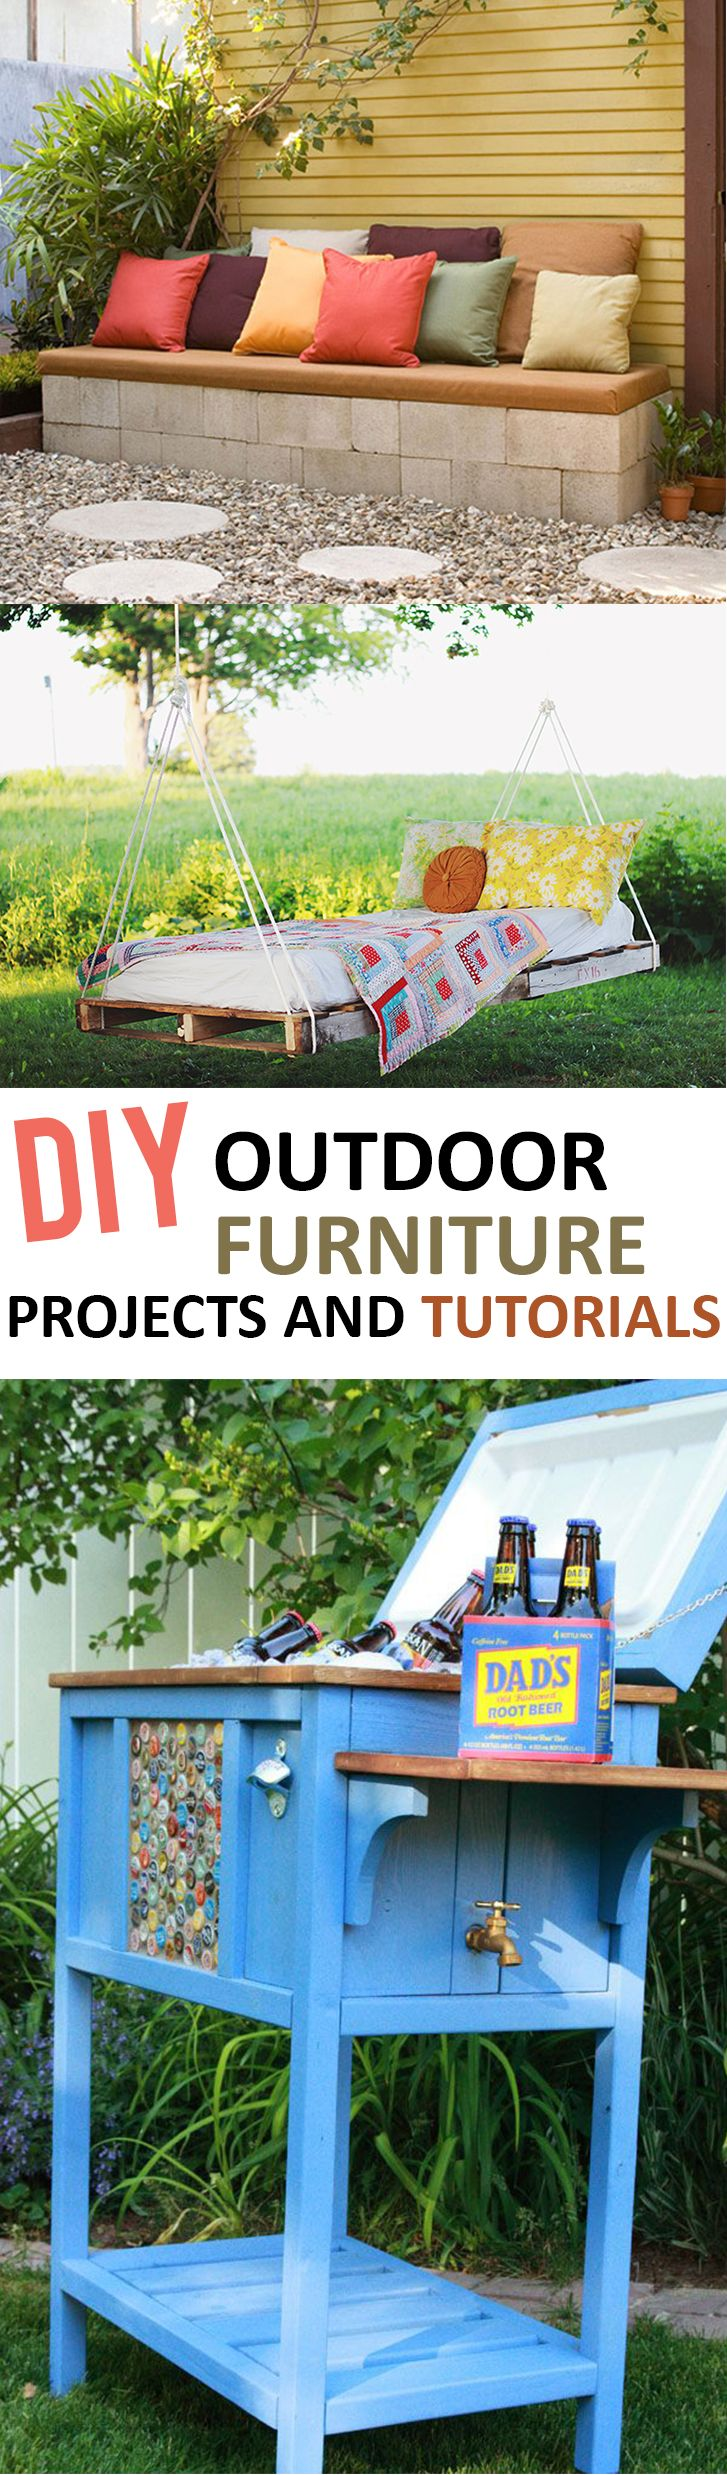 DIY Outdoor Furniture Projects and Tutorials